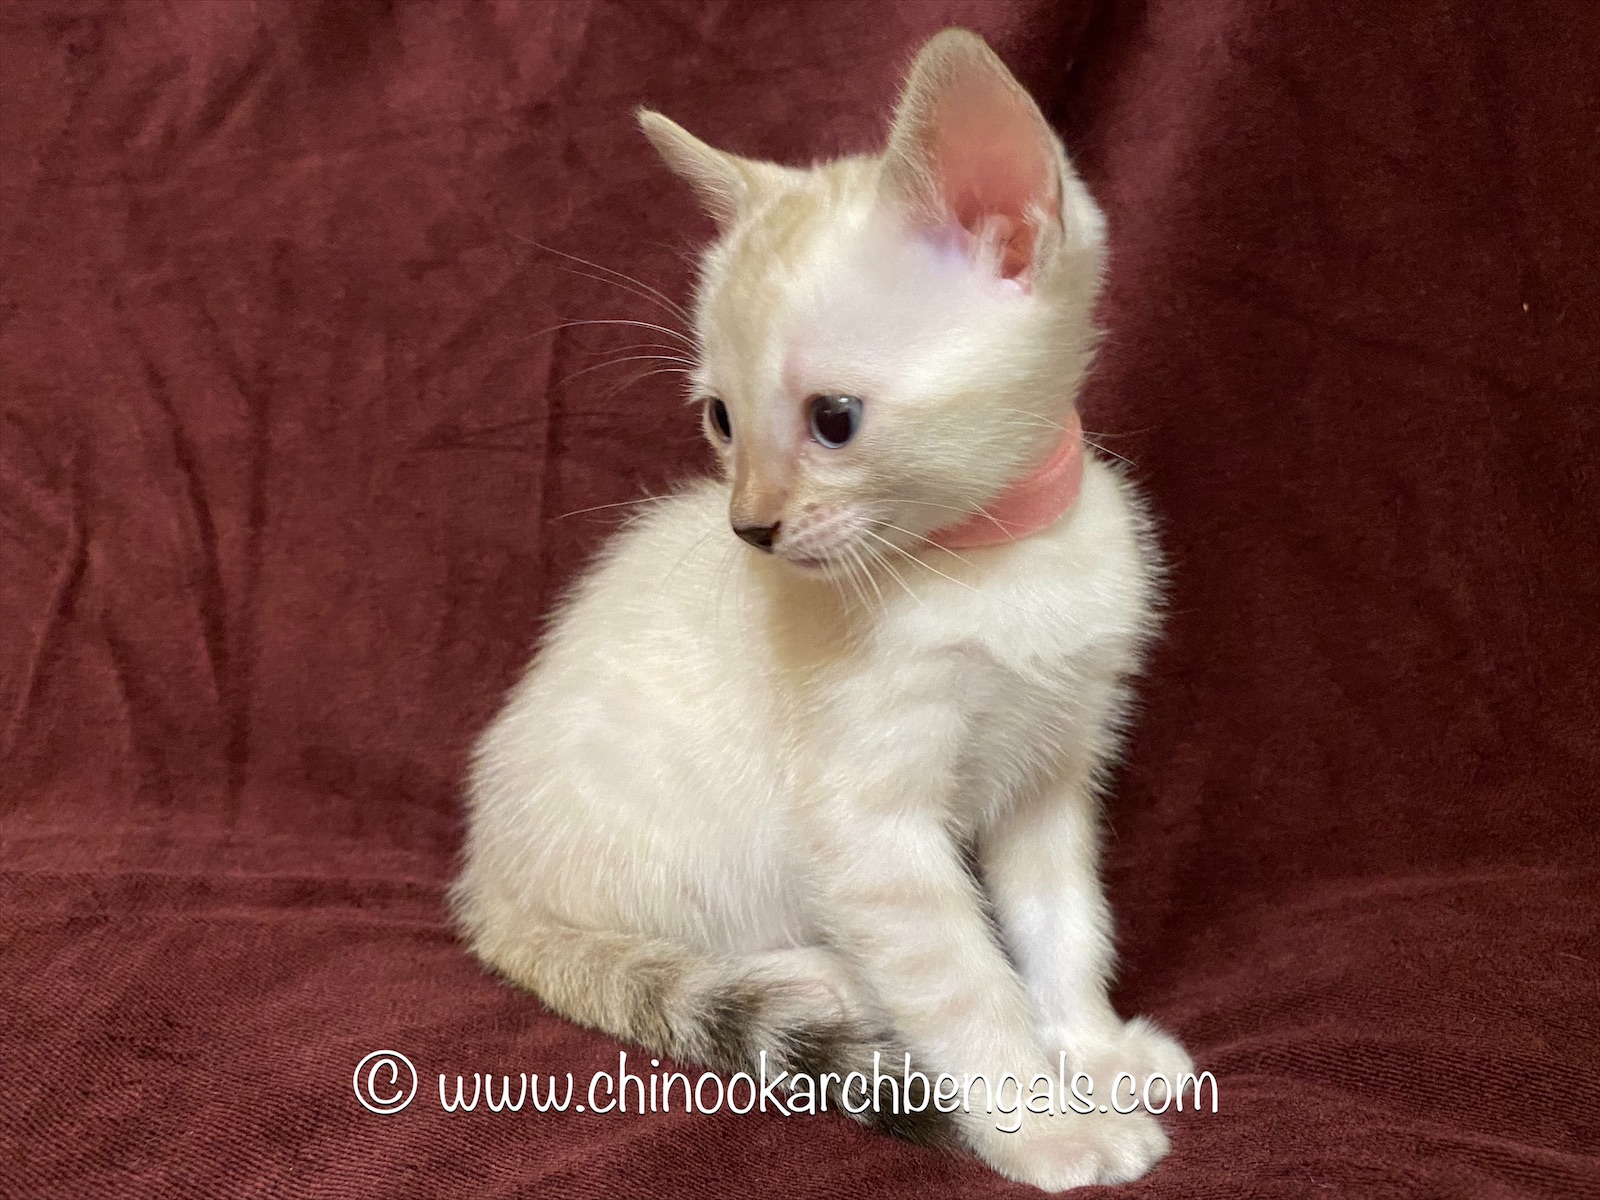 Chinook Arch Bengals - Pixie 7 20 20 (3)